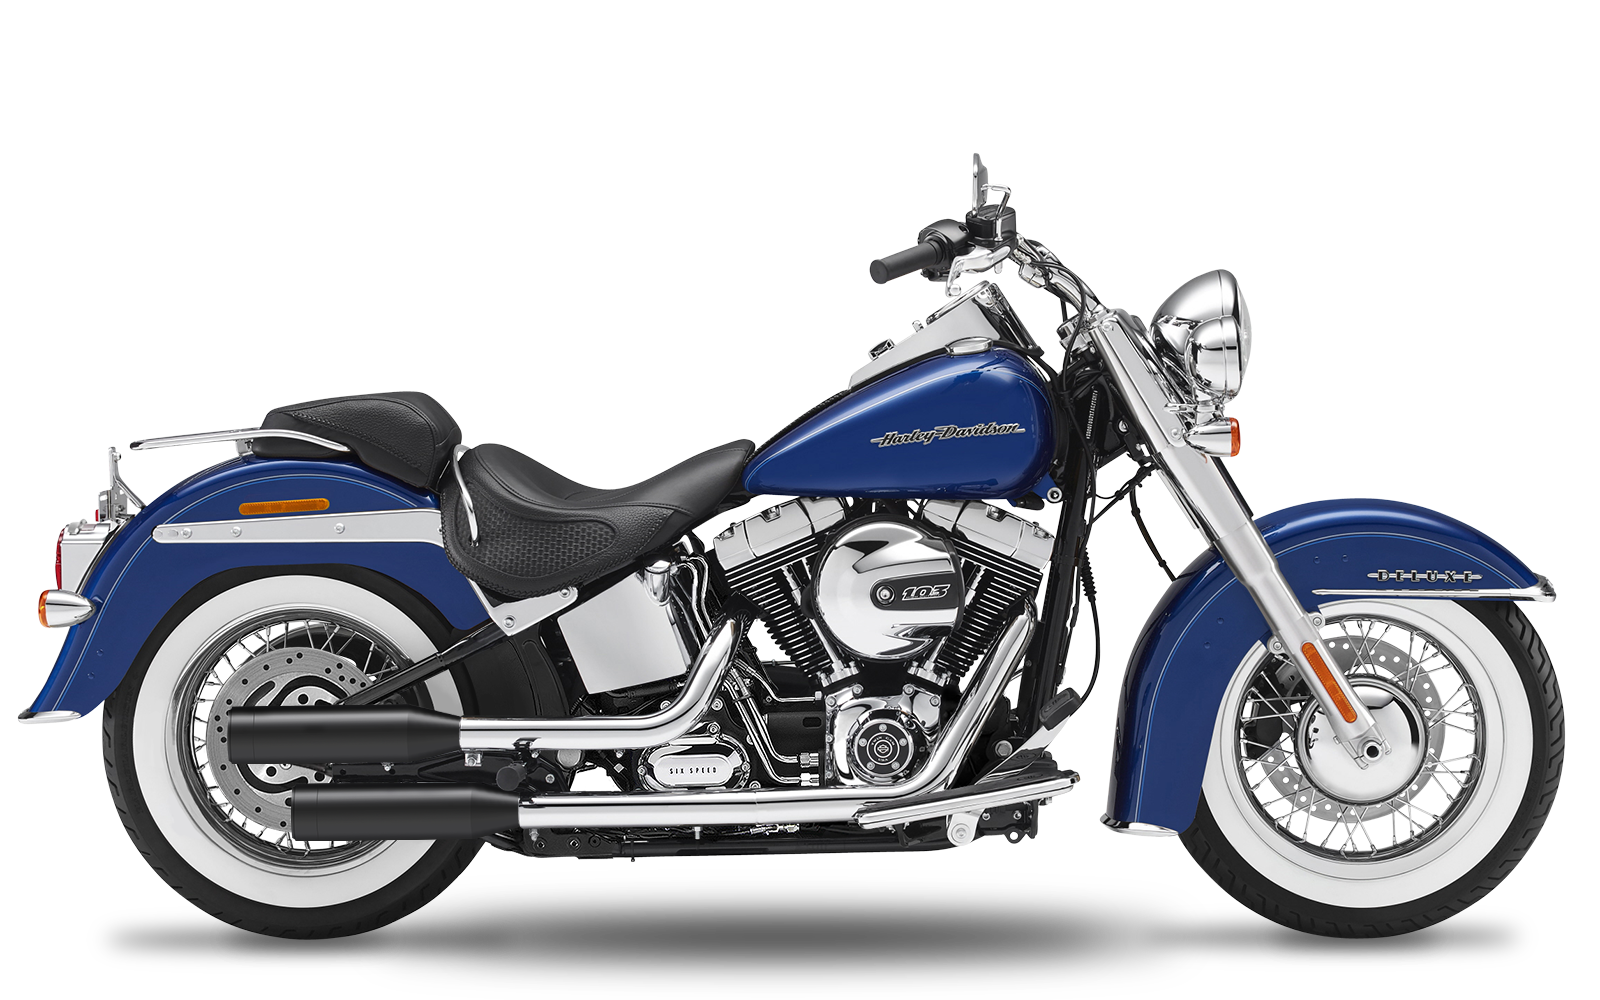 Softail - Cross Bones - TC96 - 2007-2011 - Endtöpfe